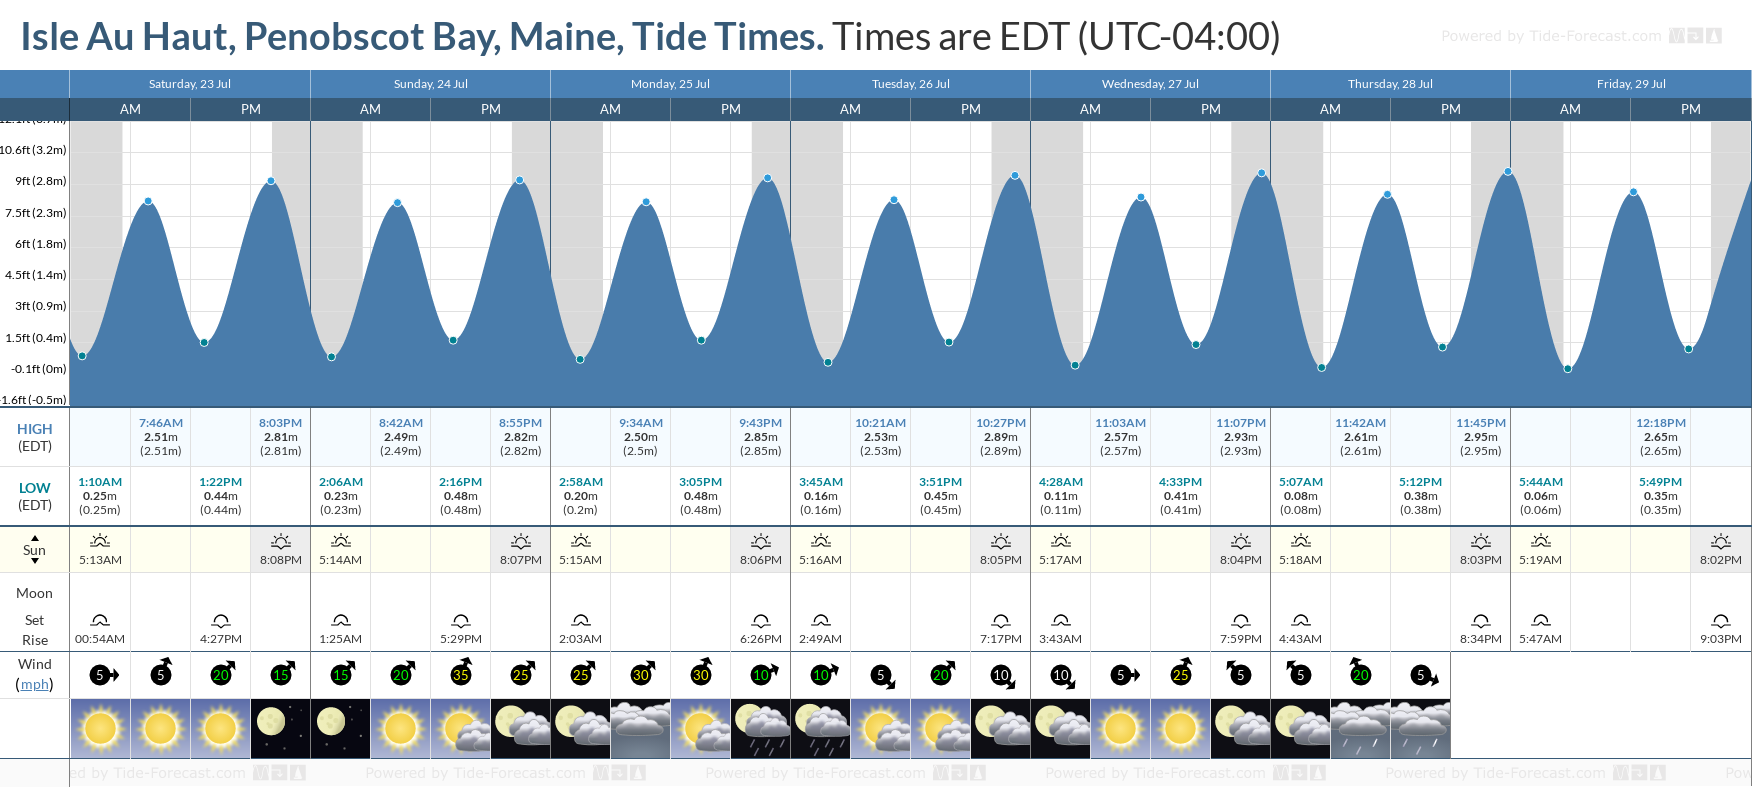 Isle Au Haut, Penobscot Bay, Maine Tide Chart including high and low tide tide times for the next 7 days